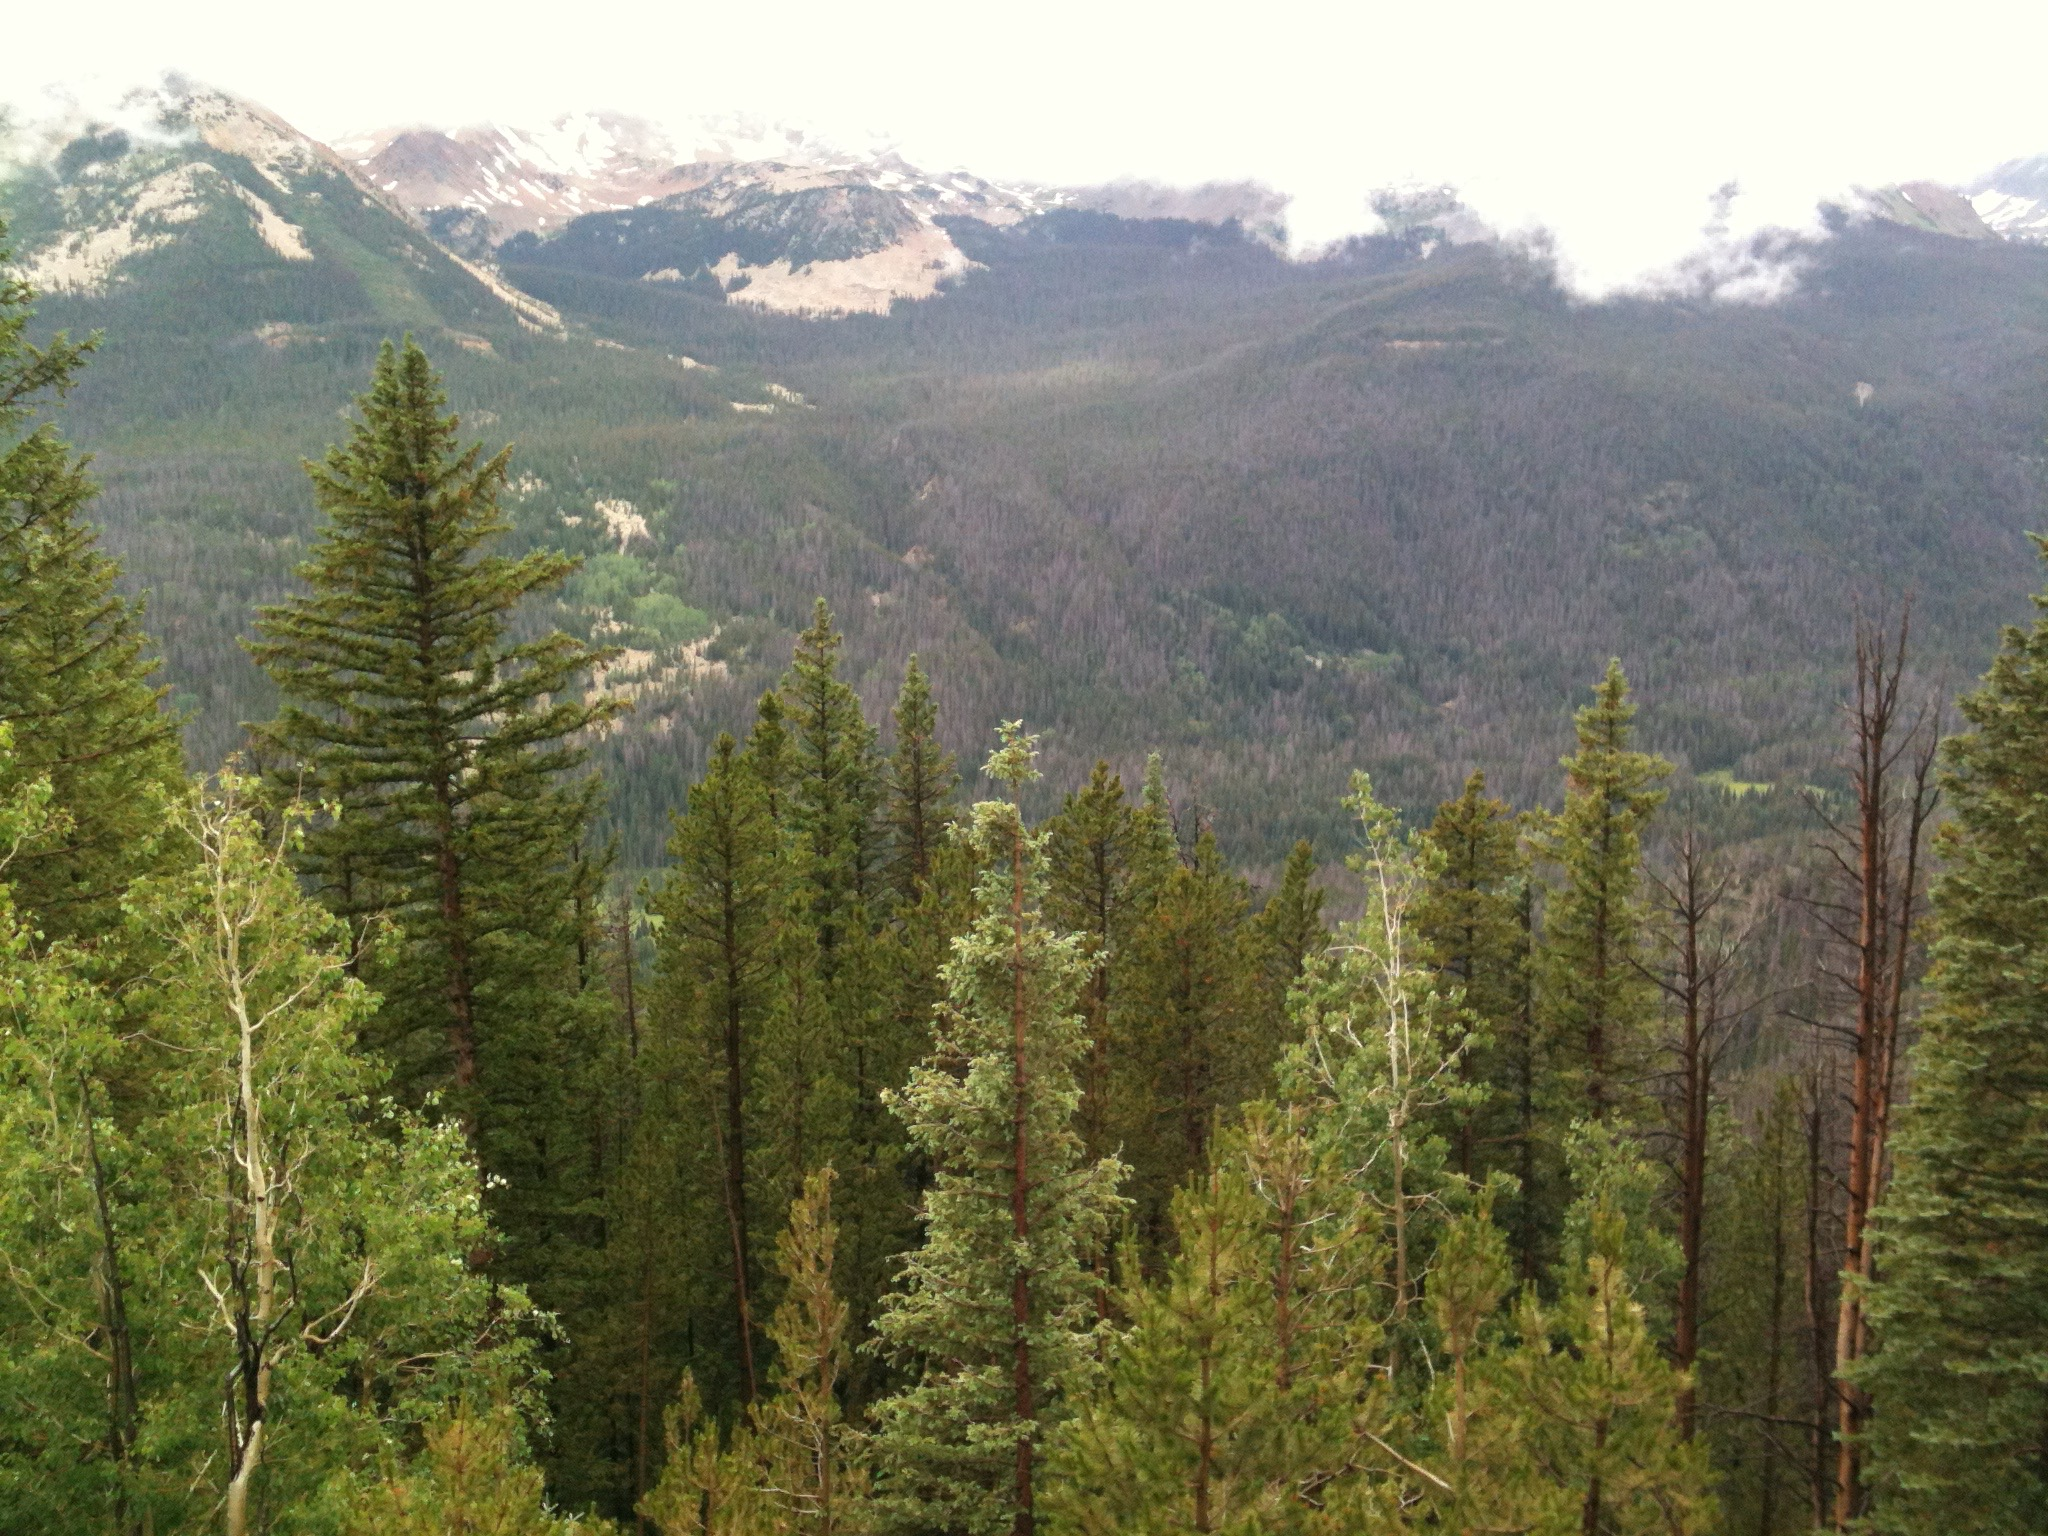 Rocky Mountain National Park. The brown swaths are signs of beetle kill destroying trees.